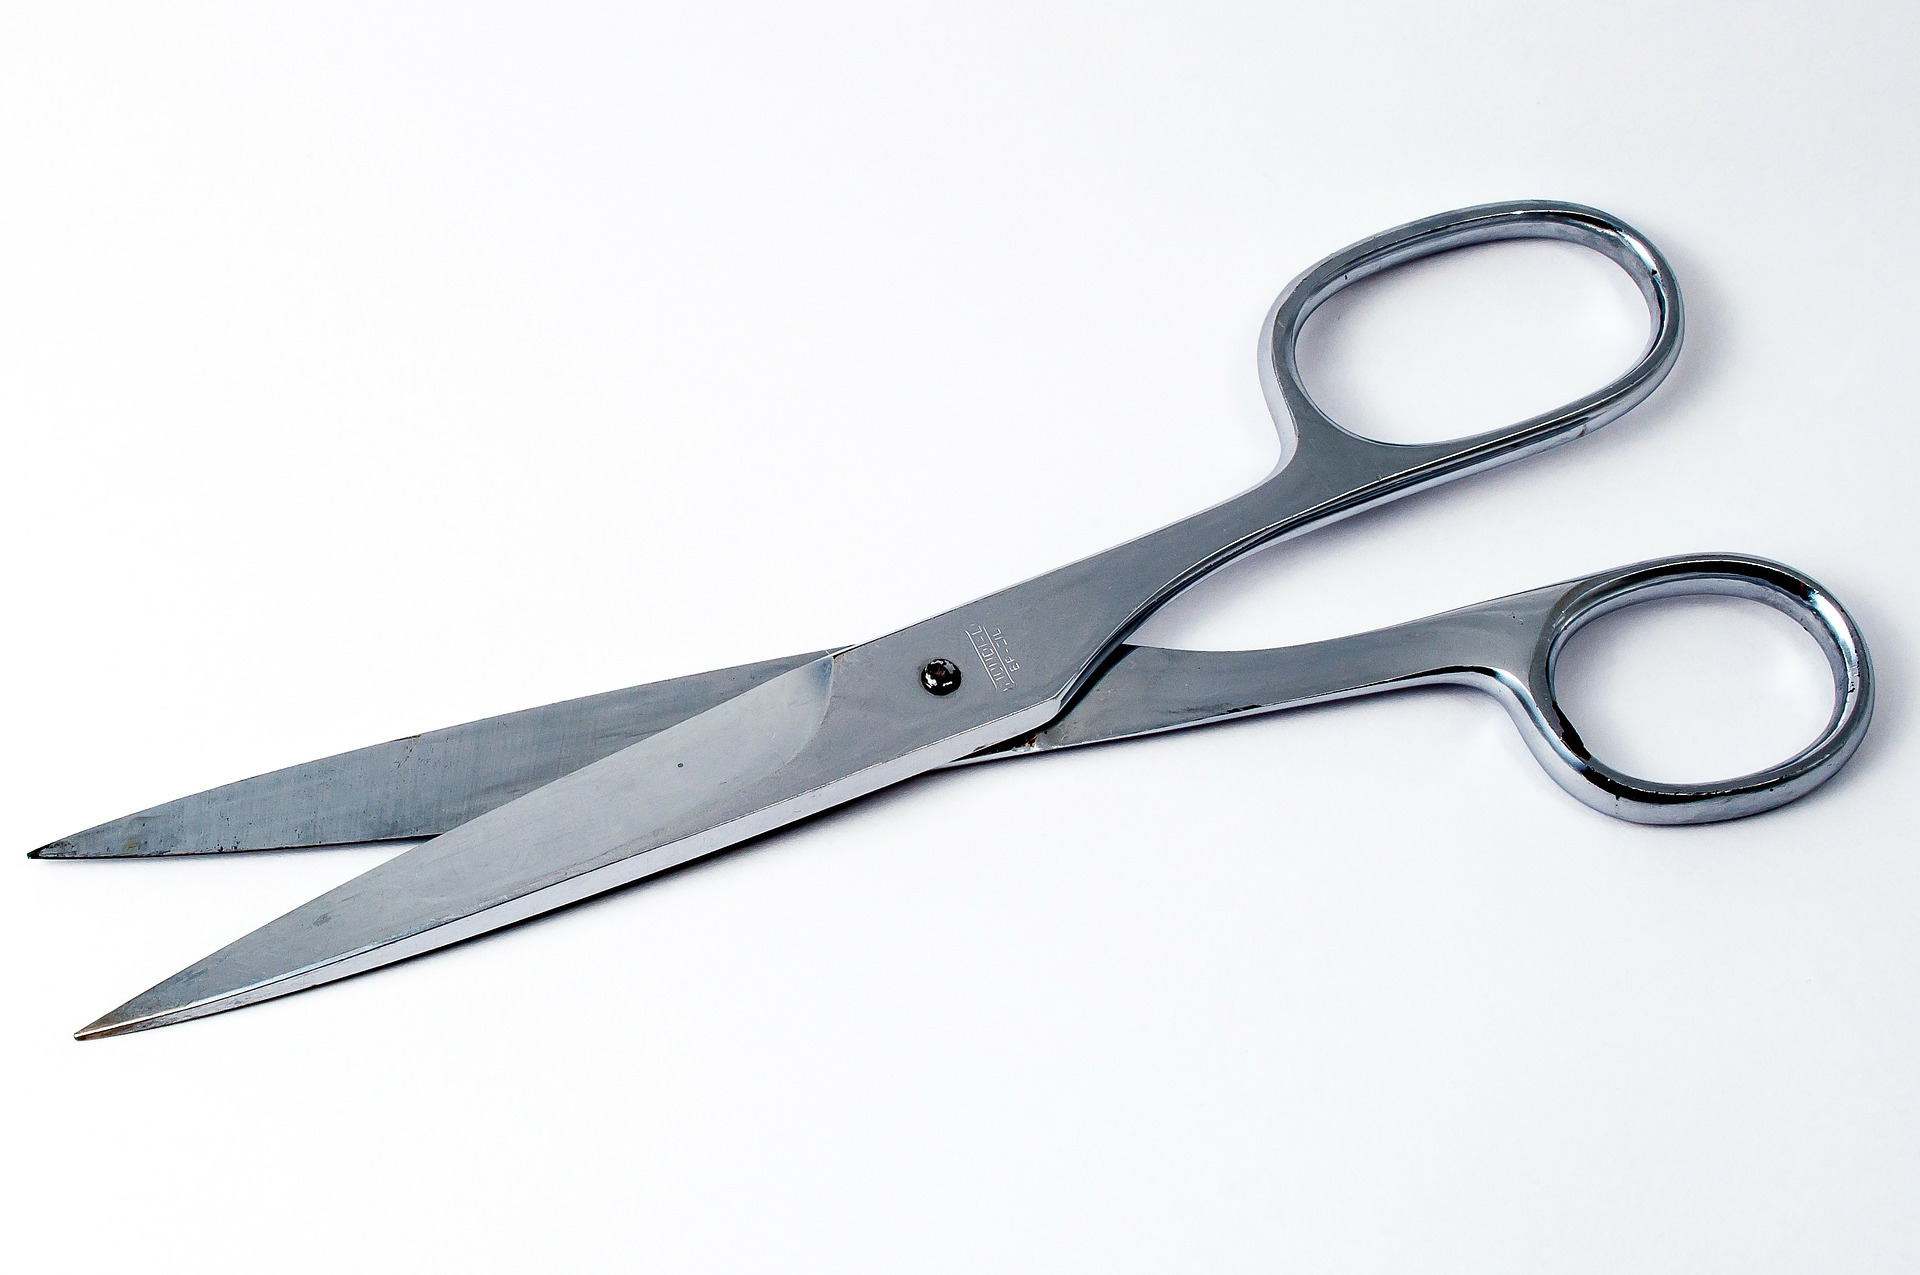 Scissors on an isolated background